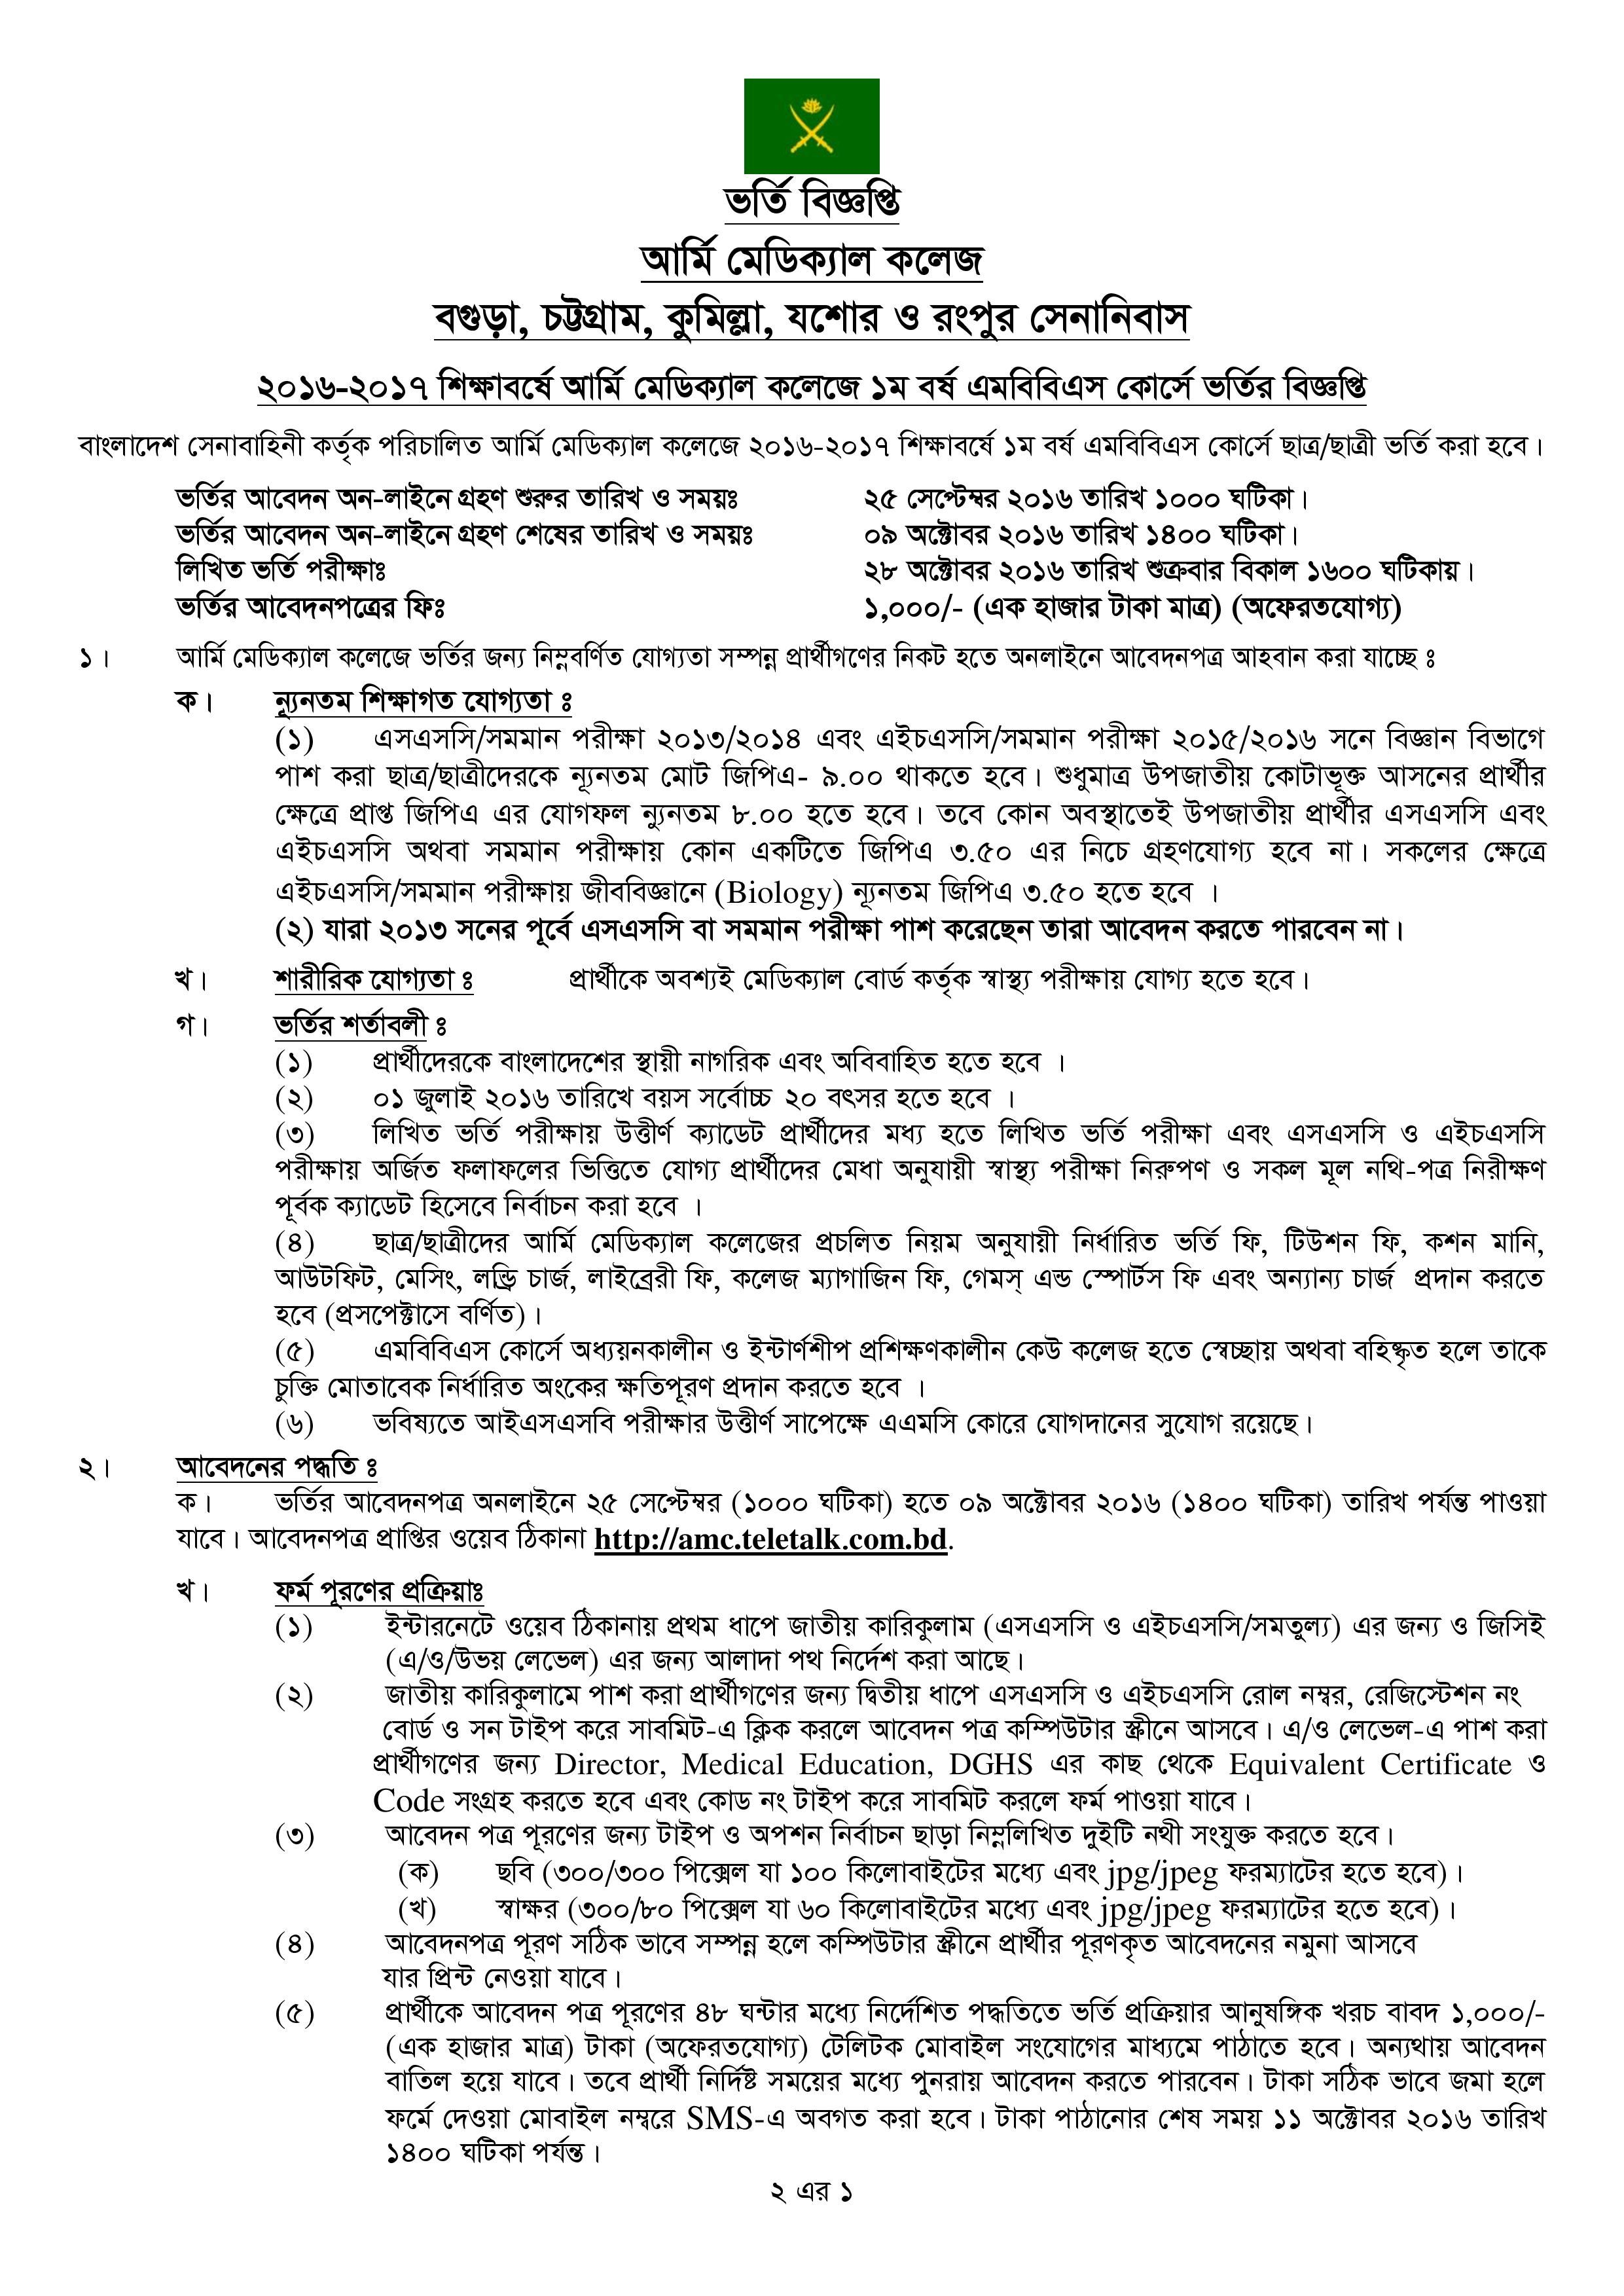 Army Medical College Admission Test Circular 2016-17 - BD